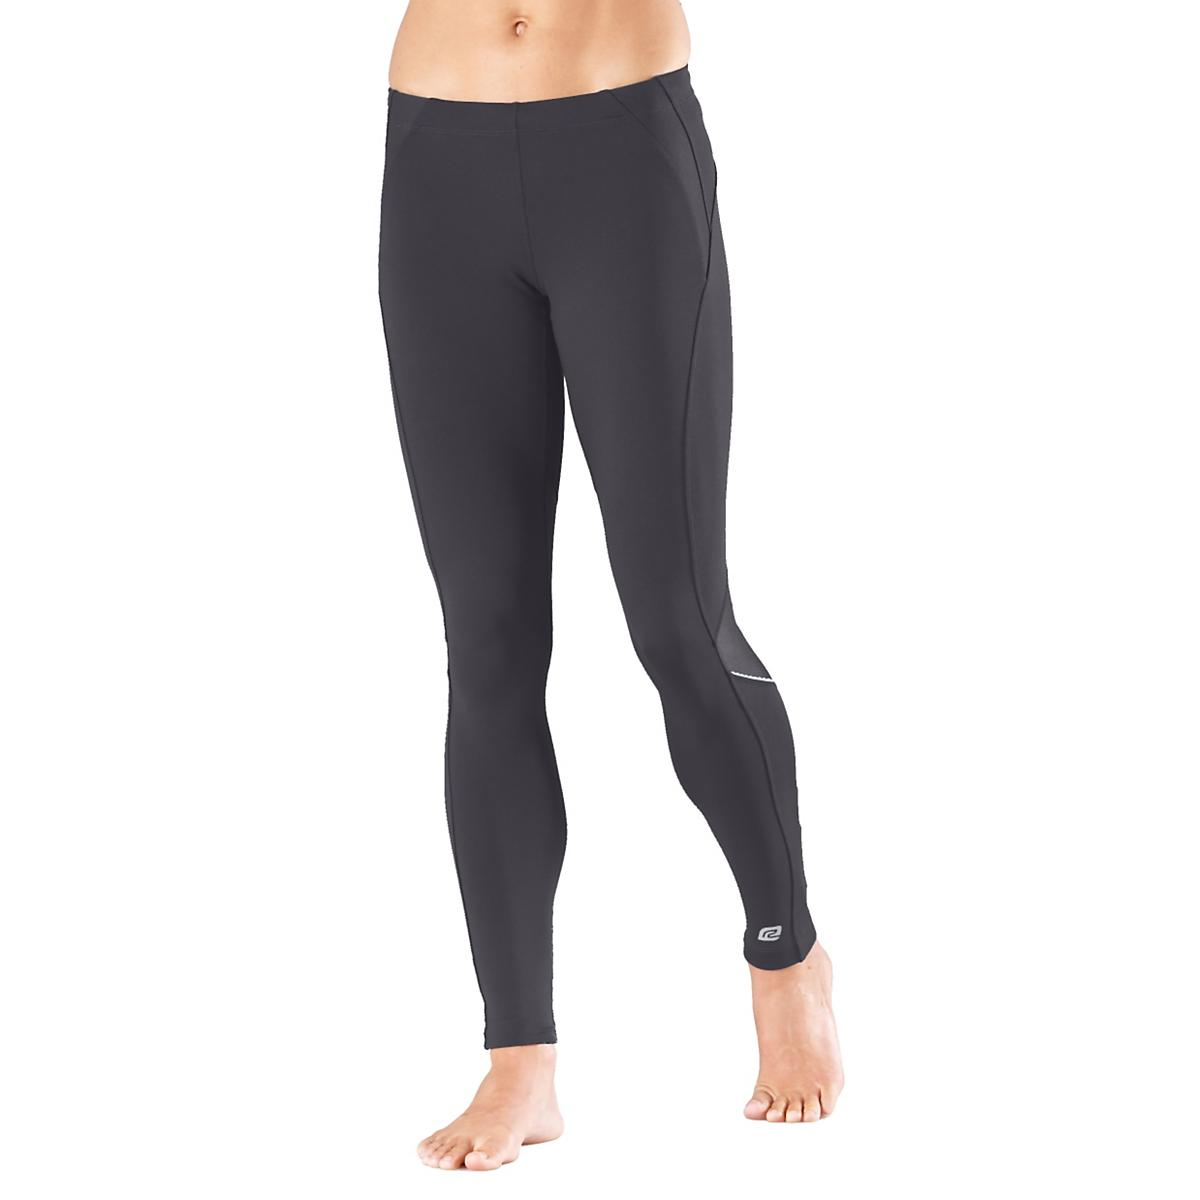 07ddc786ddf48 Womens R-Gear High-Speed Compression Fitted Tights at Road Runner .